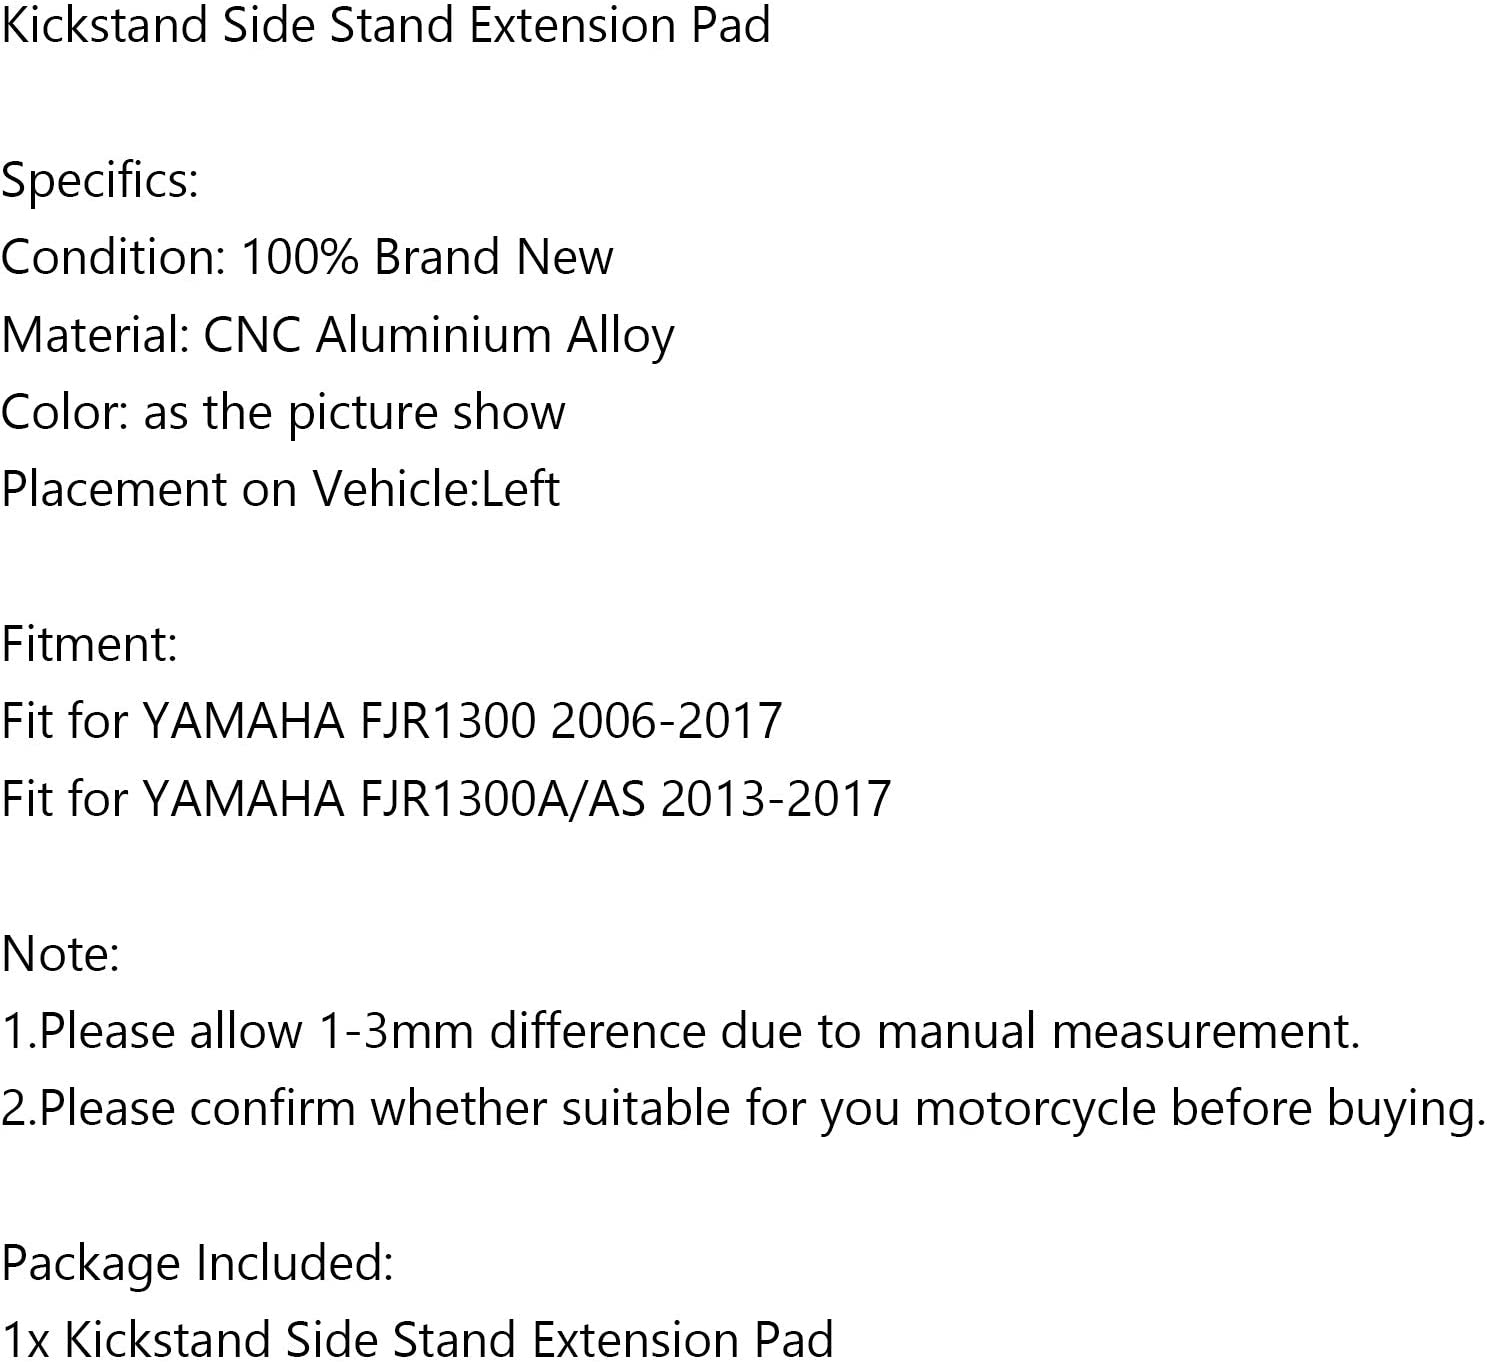 Topteng Motorcycle Kickstand Side Stand Extension Pad Sidestand Enlarge Plate Pad fits for YAMAHA FJR1300 2006-2017 FJR1300A//AS 2013-2017